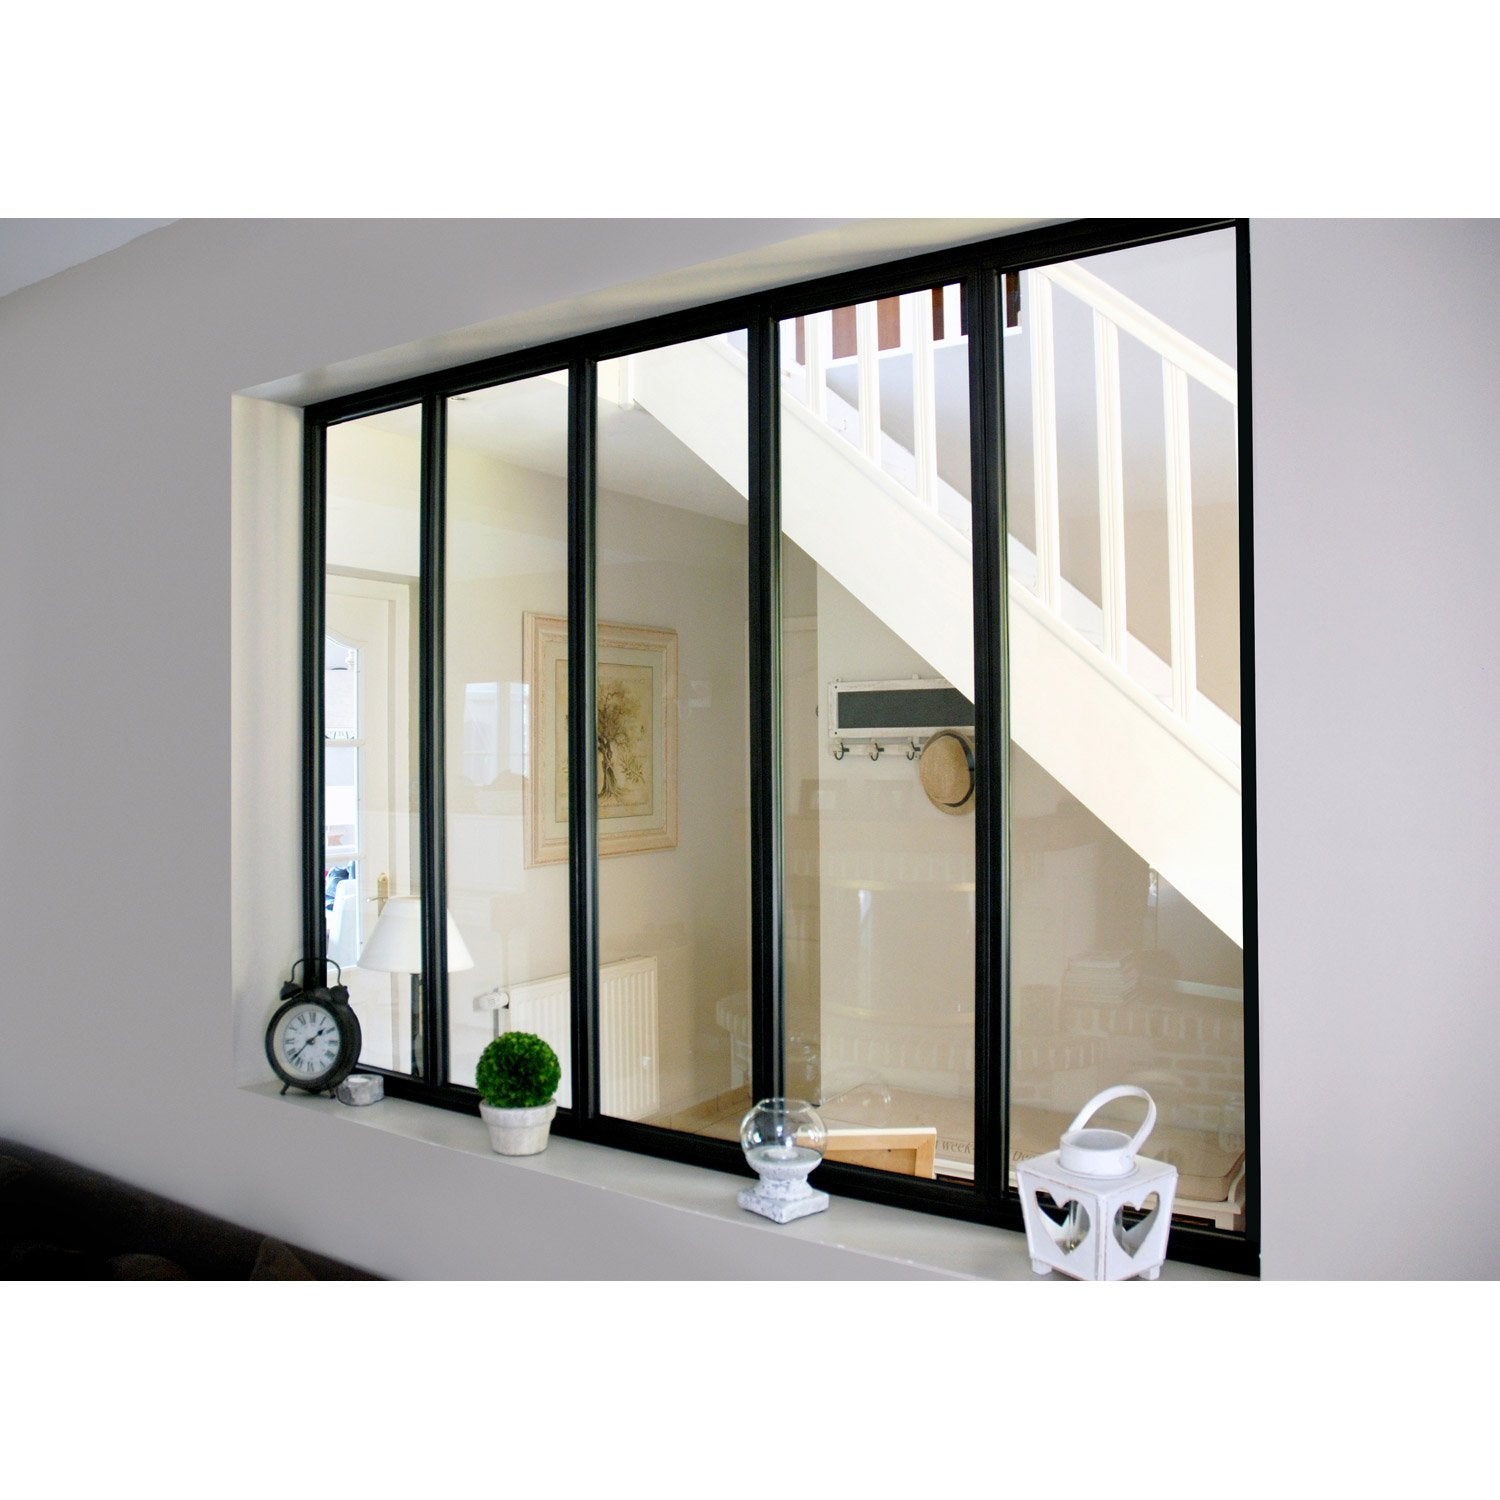 Verri re d 39 int rieur atelier en kit aluminium noir 5 vitrages h x l m leroy merlin for Verriere d interieur